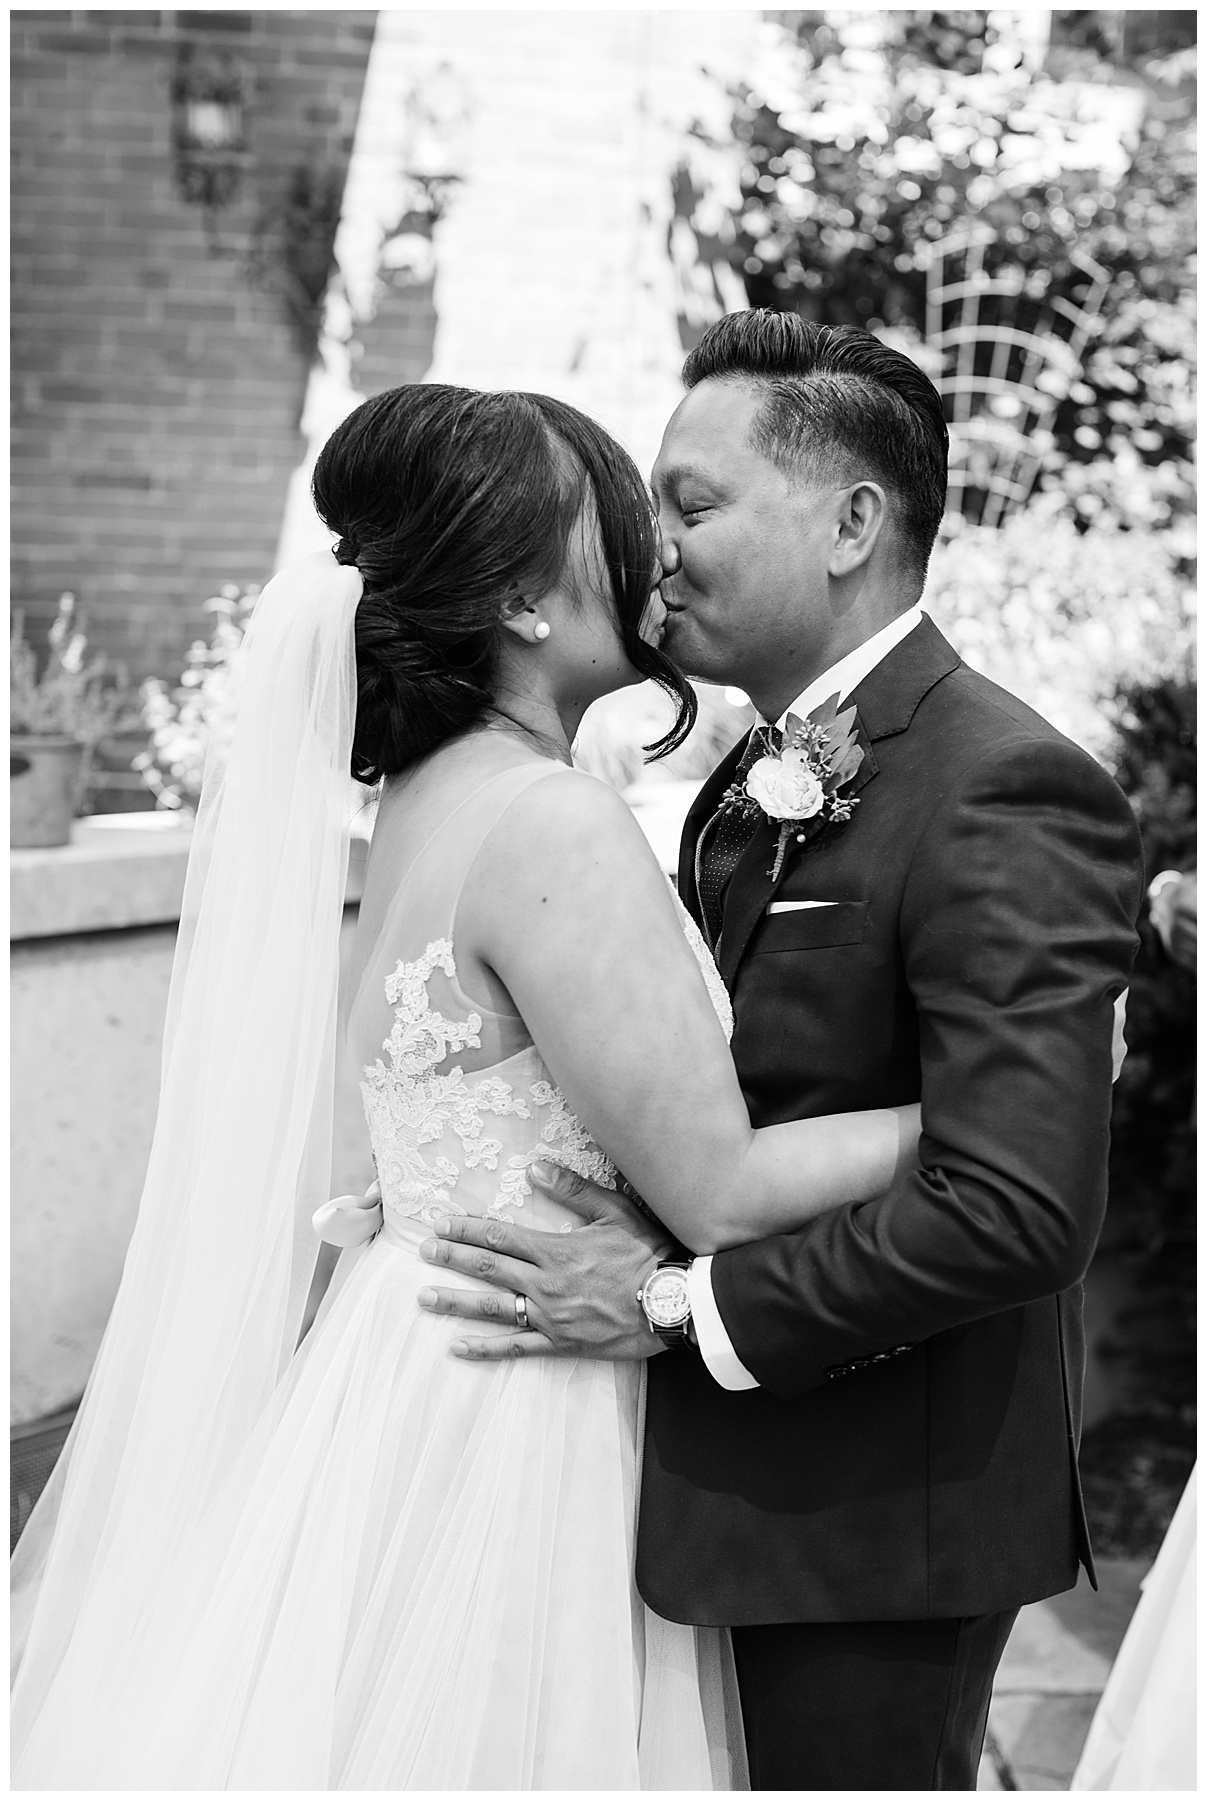 You may kiss the bride| The George Restaurant Wedding| Toronto Wedding Photographer| Ontario wedding photographer| 3photography